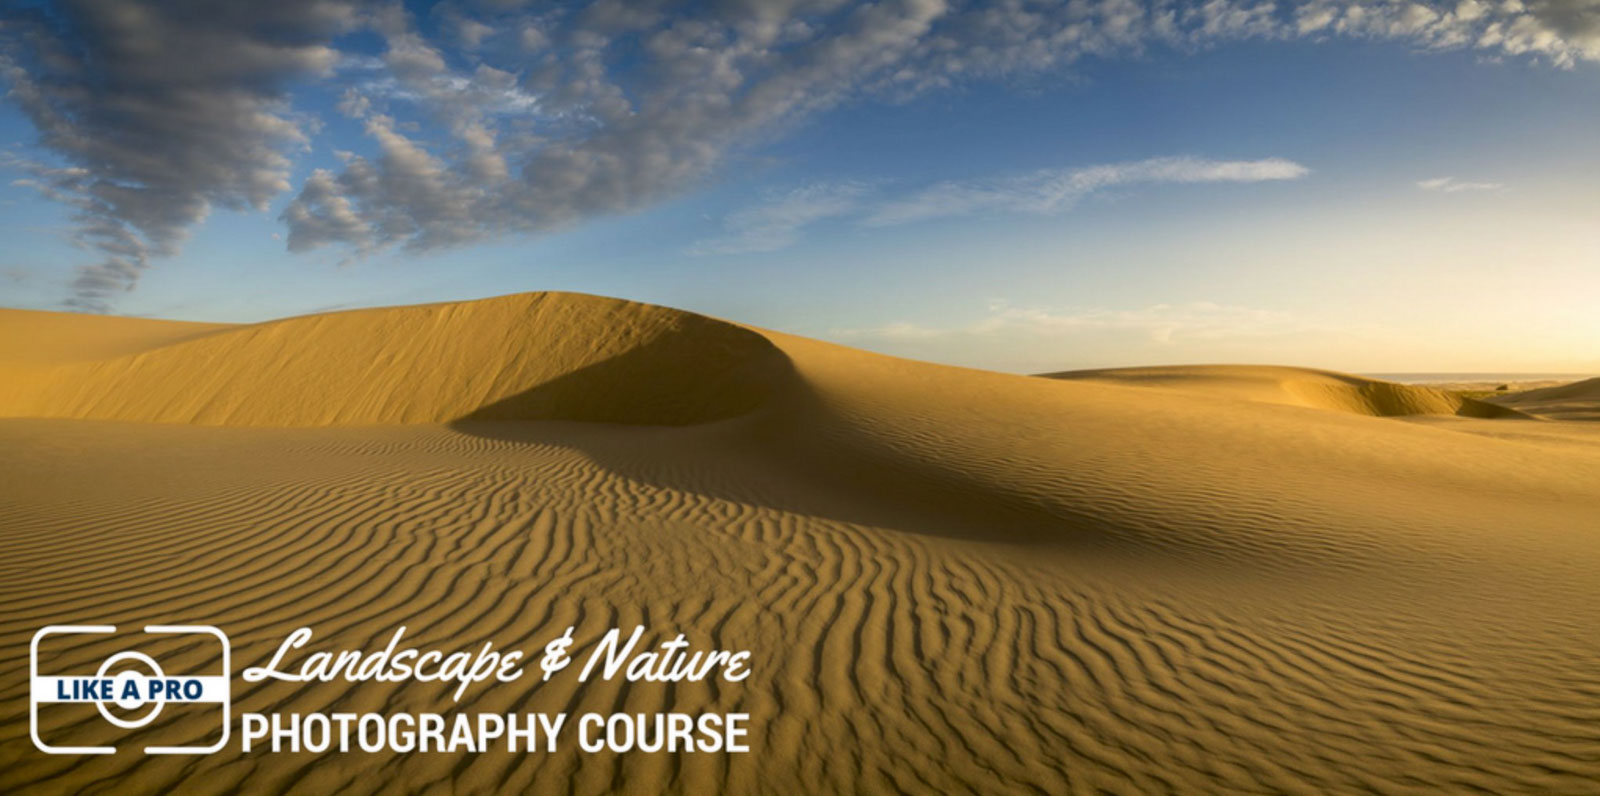 how to shoot landscape and nature photography like a pro course dps